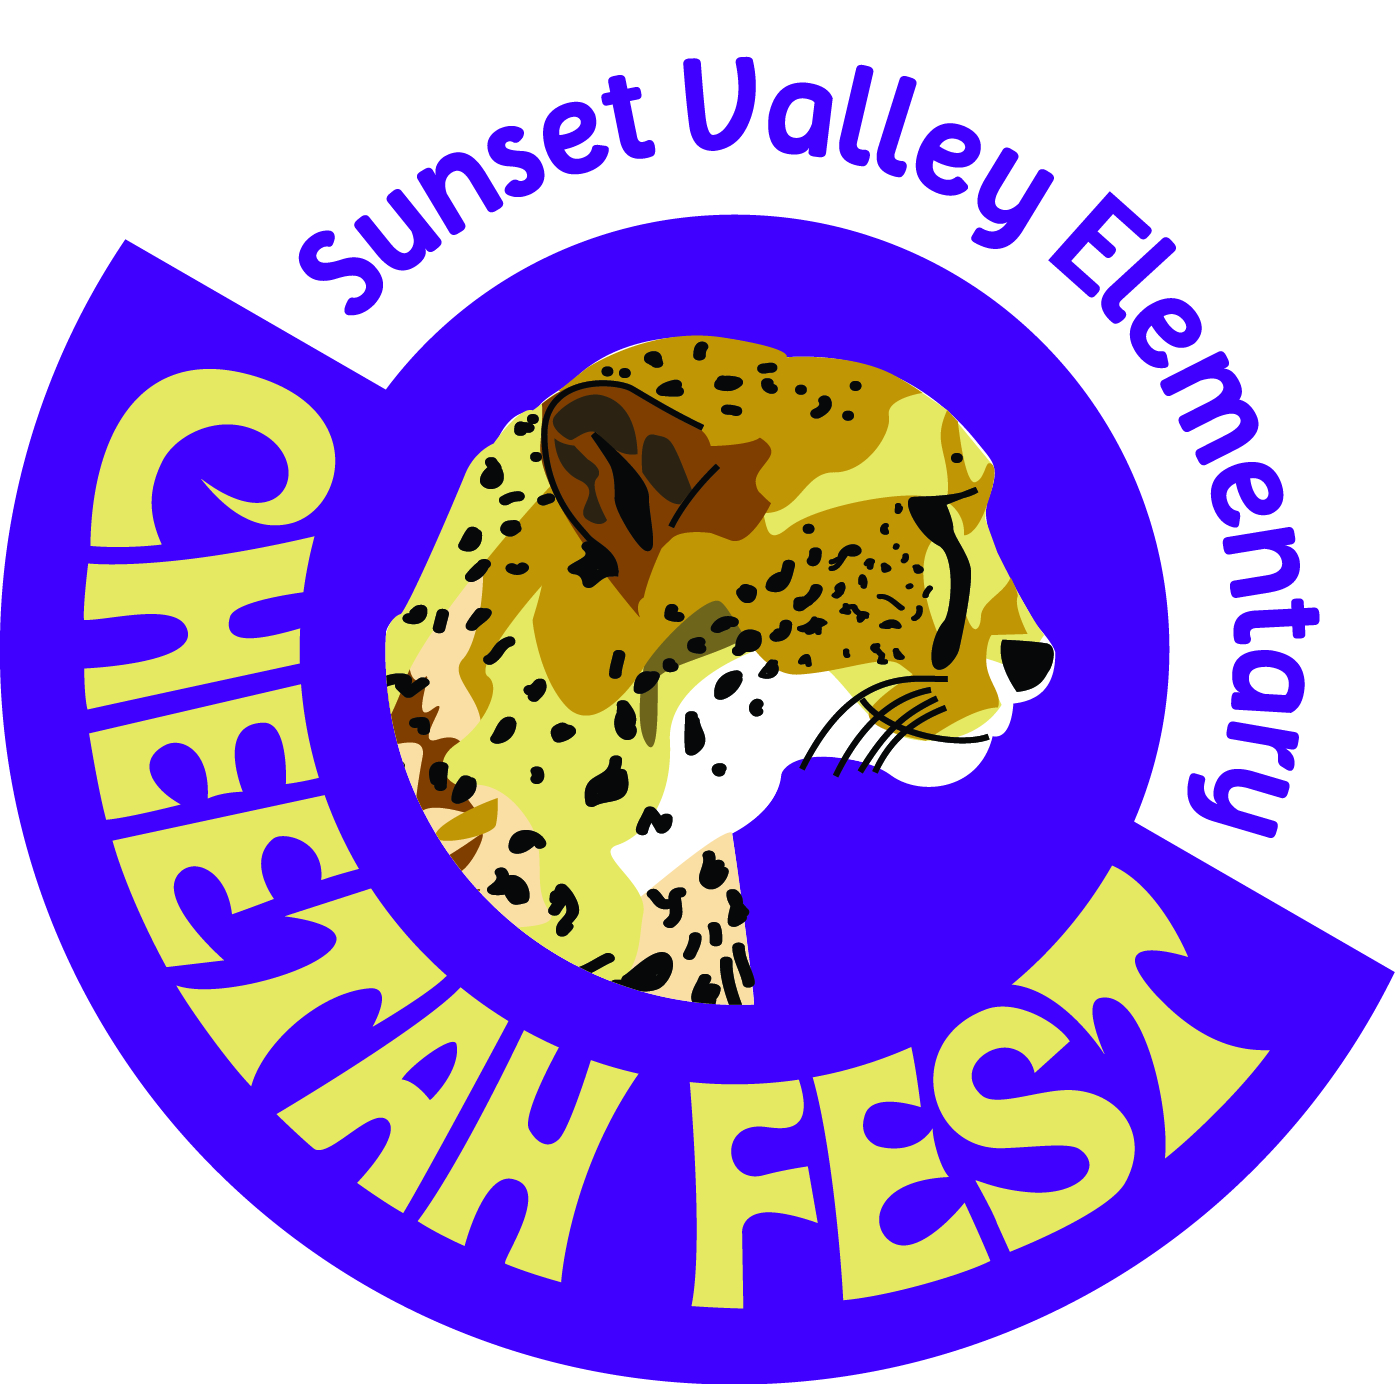 Sunset Valley Cheetah Fest - Friends and Extended Family Supporters